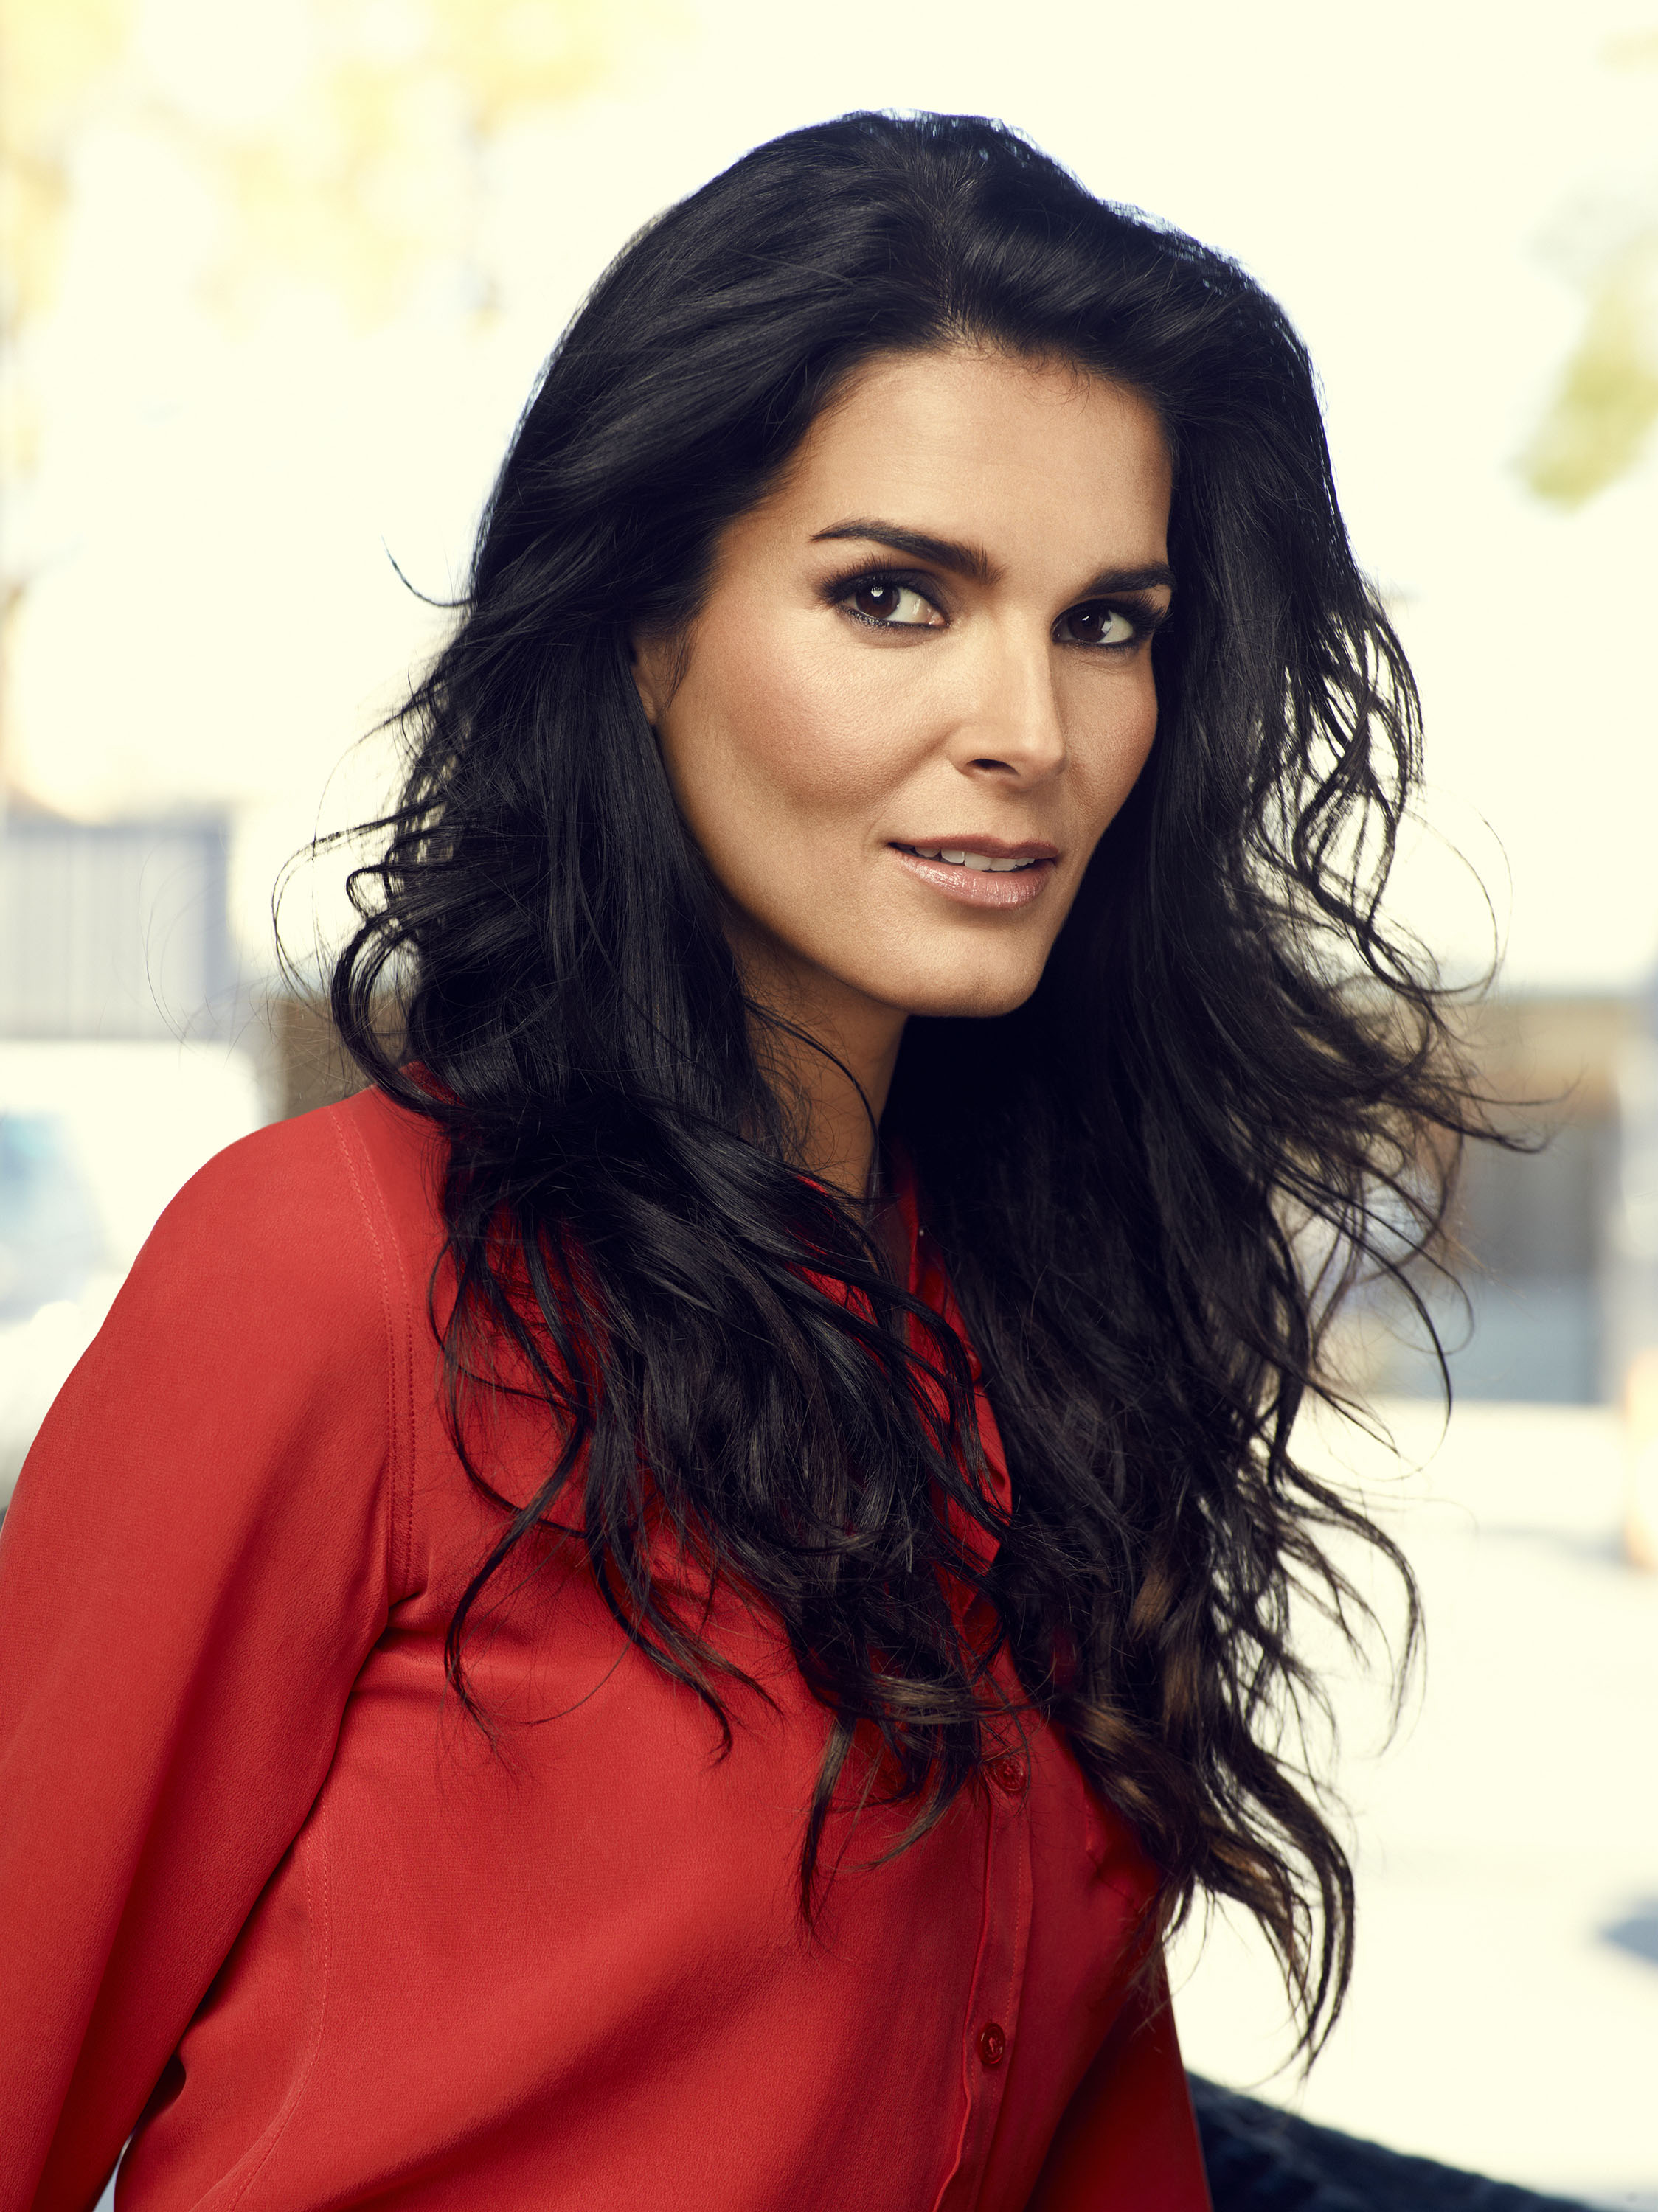 2248x3000 - Angie Harmon Wallpapers 4